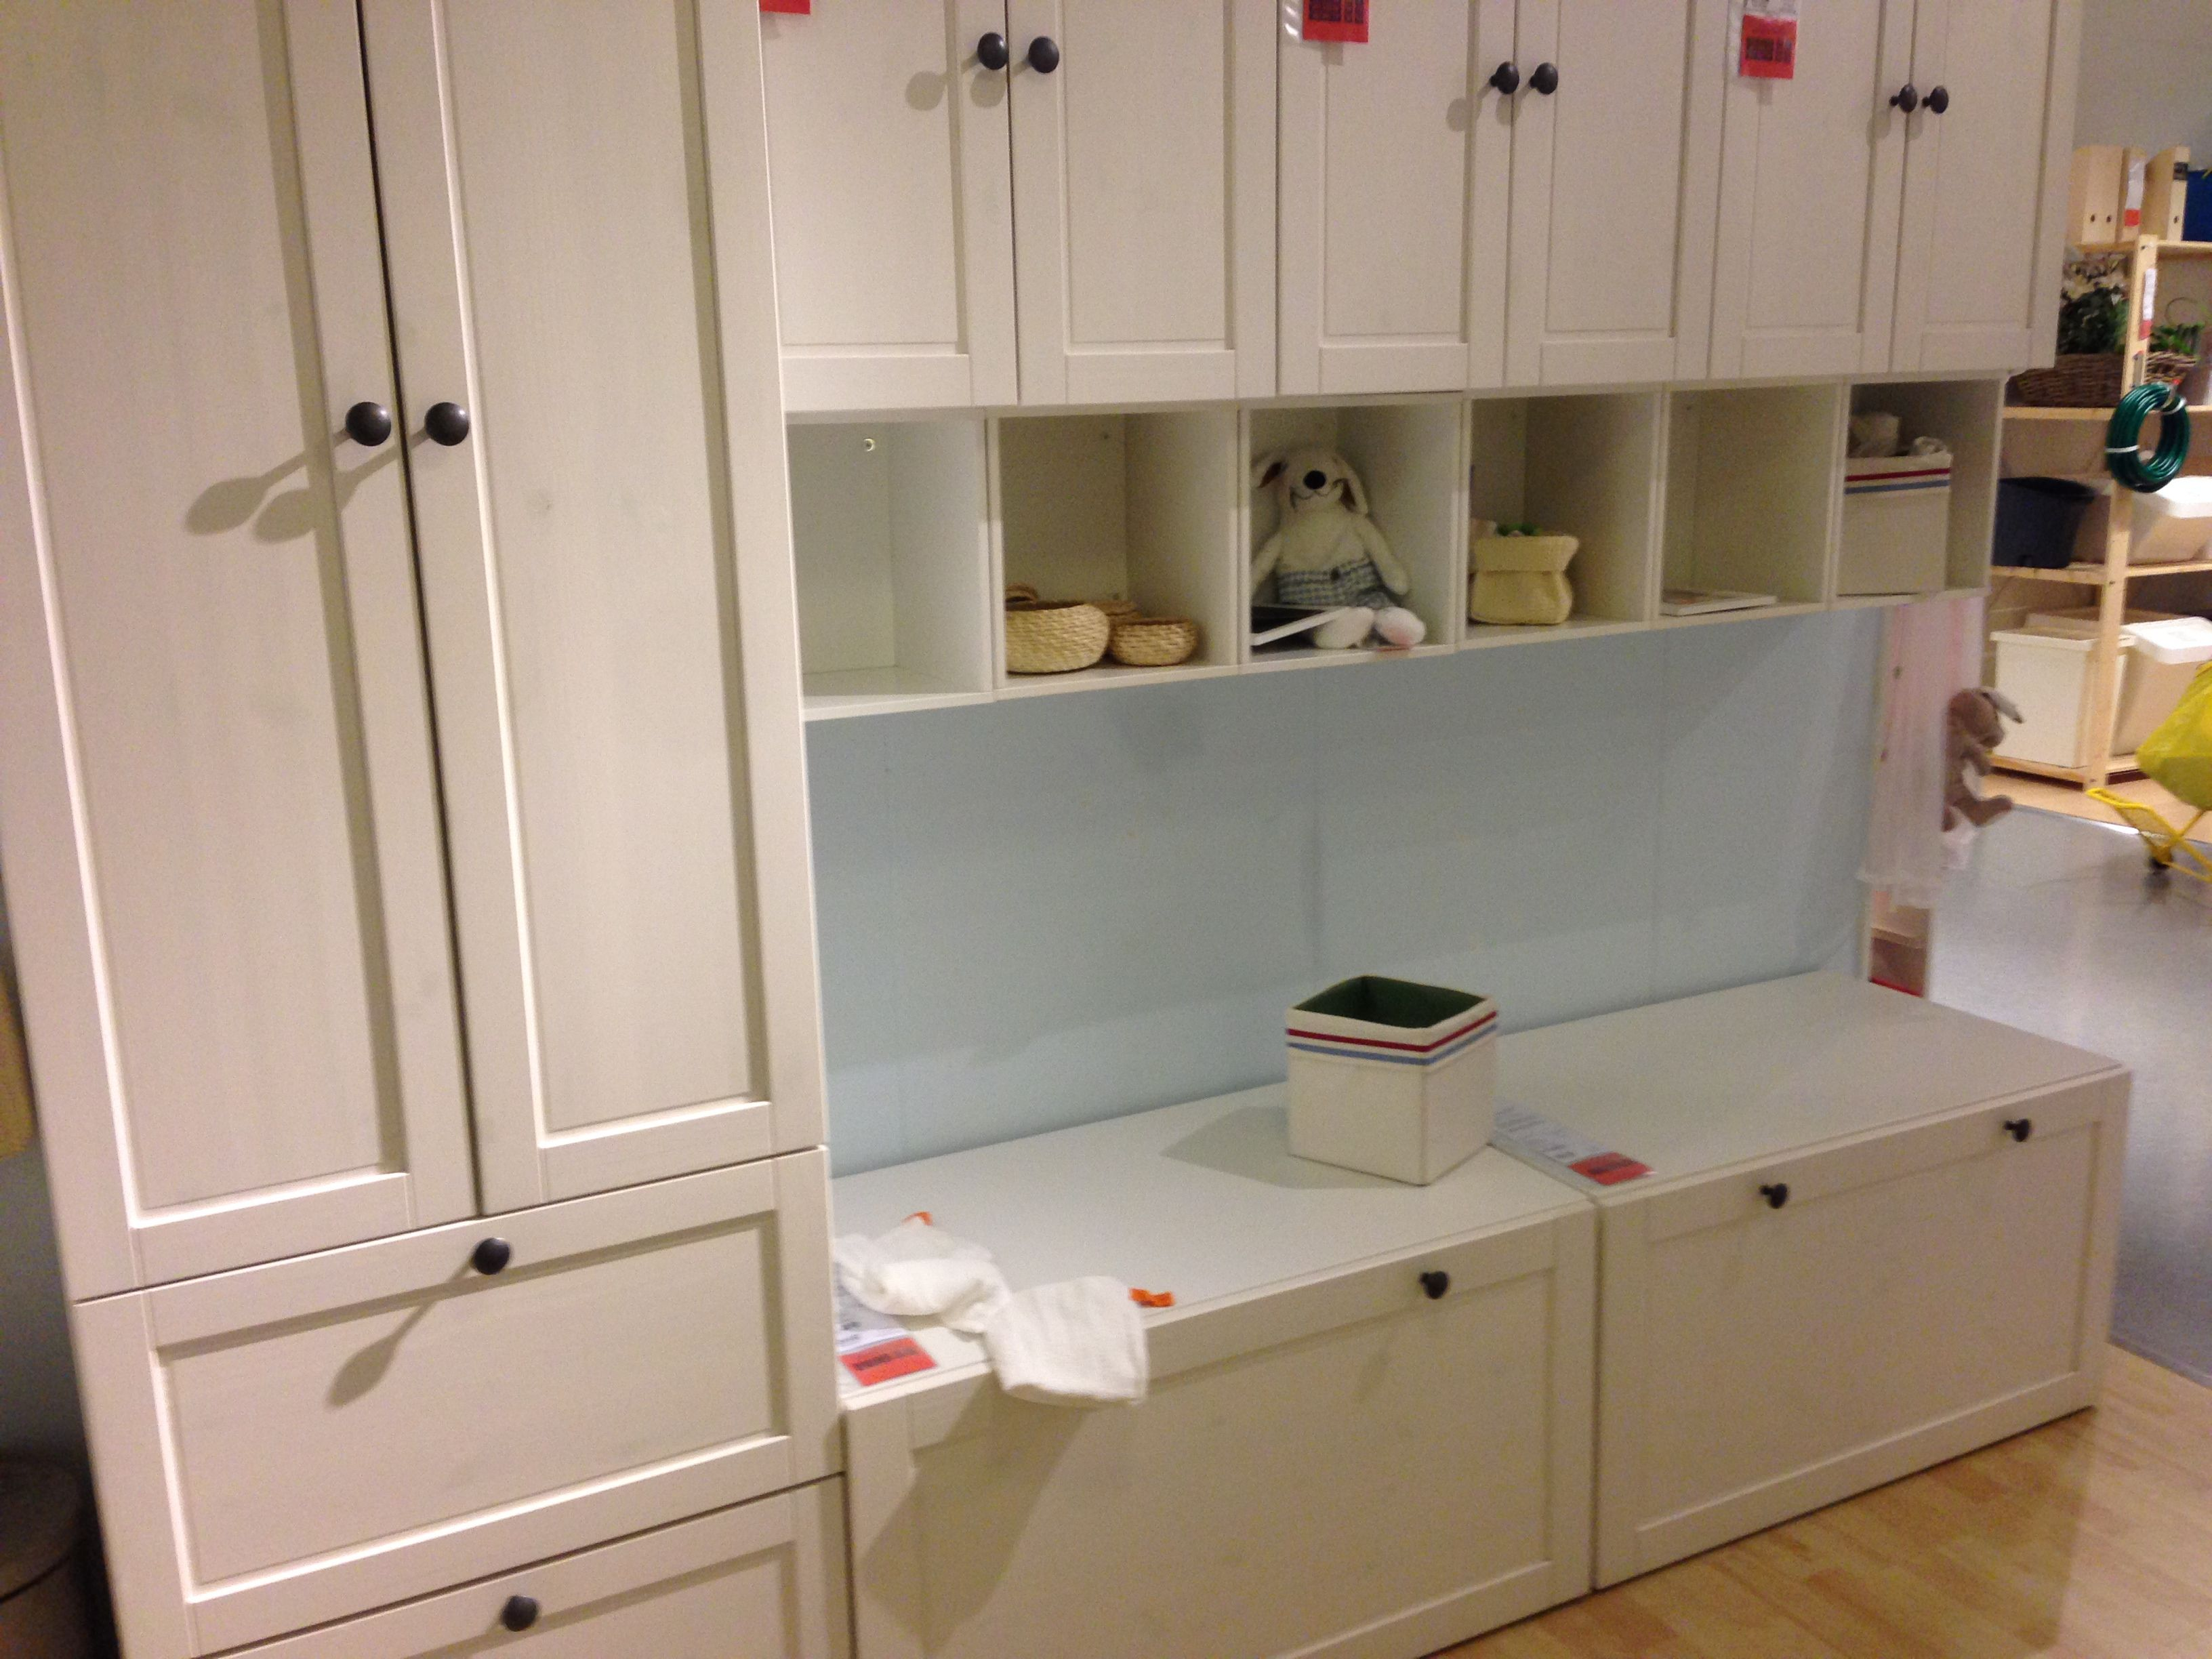 Ikea Hacks Stuva Ikea Stuva With Betsad Doors And Drawers Matches The Ikea